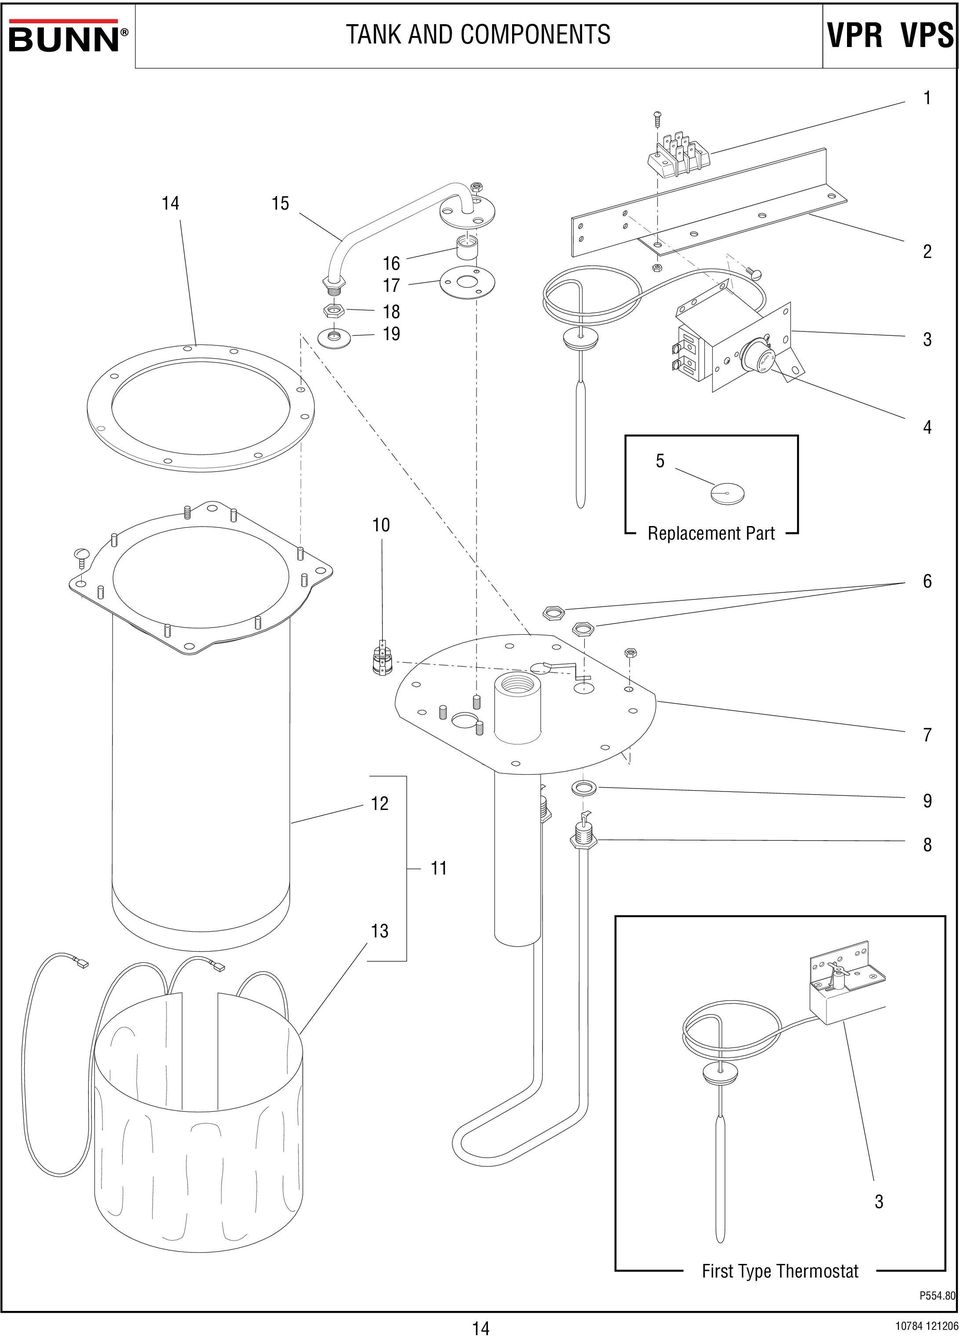 Illustrated Parts Catalog Pdf Bunn Coffee Maker Wiring Diagram Replacement Part 9